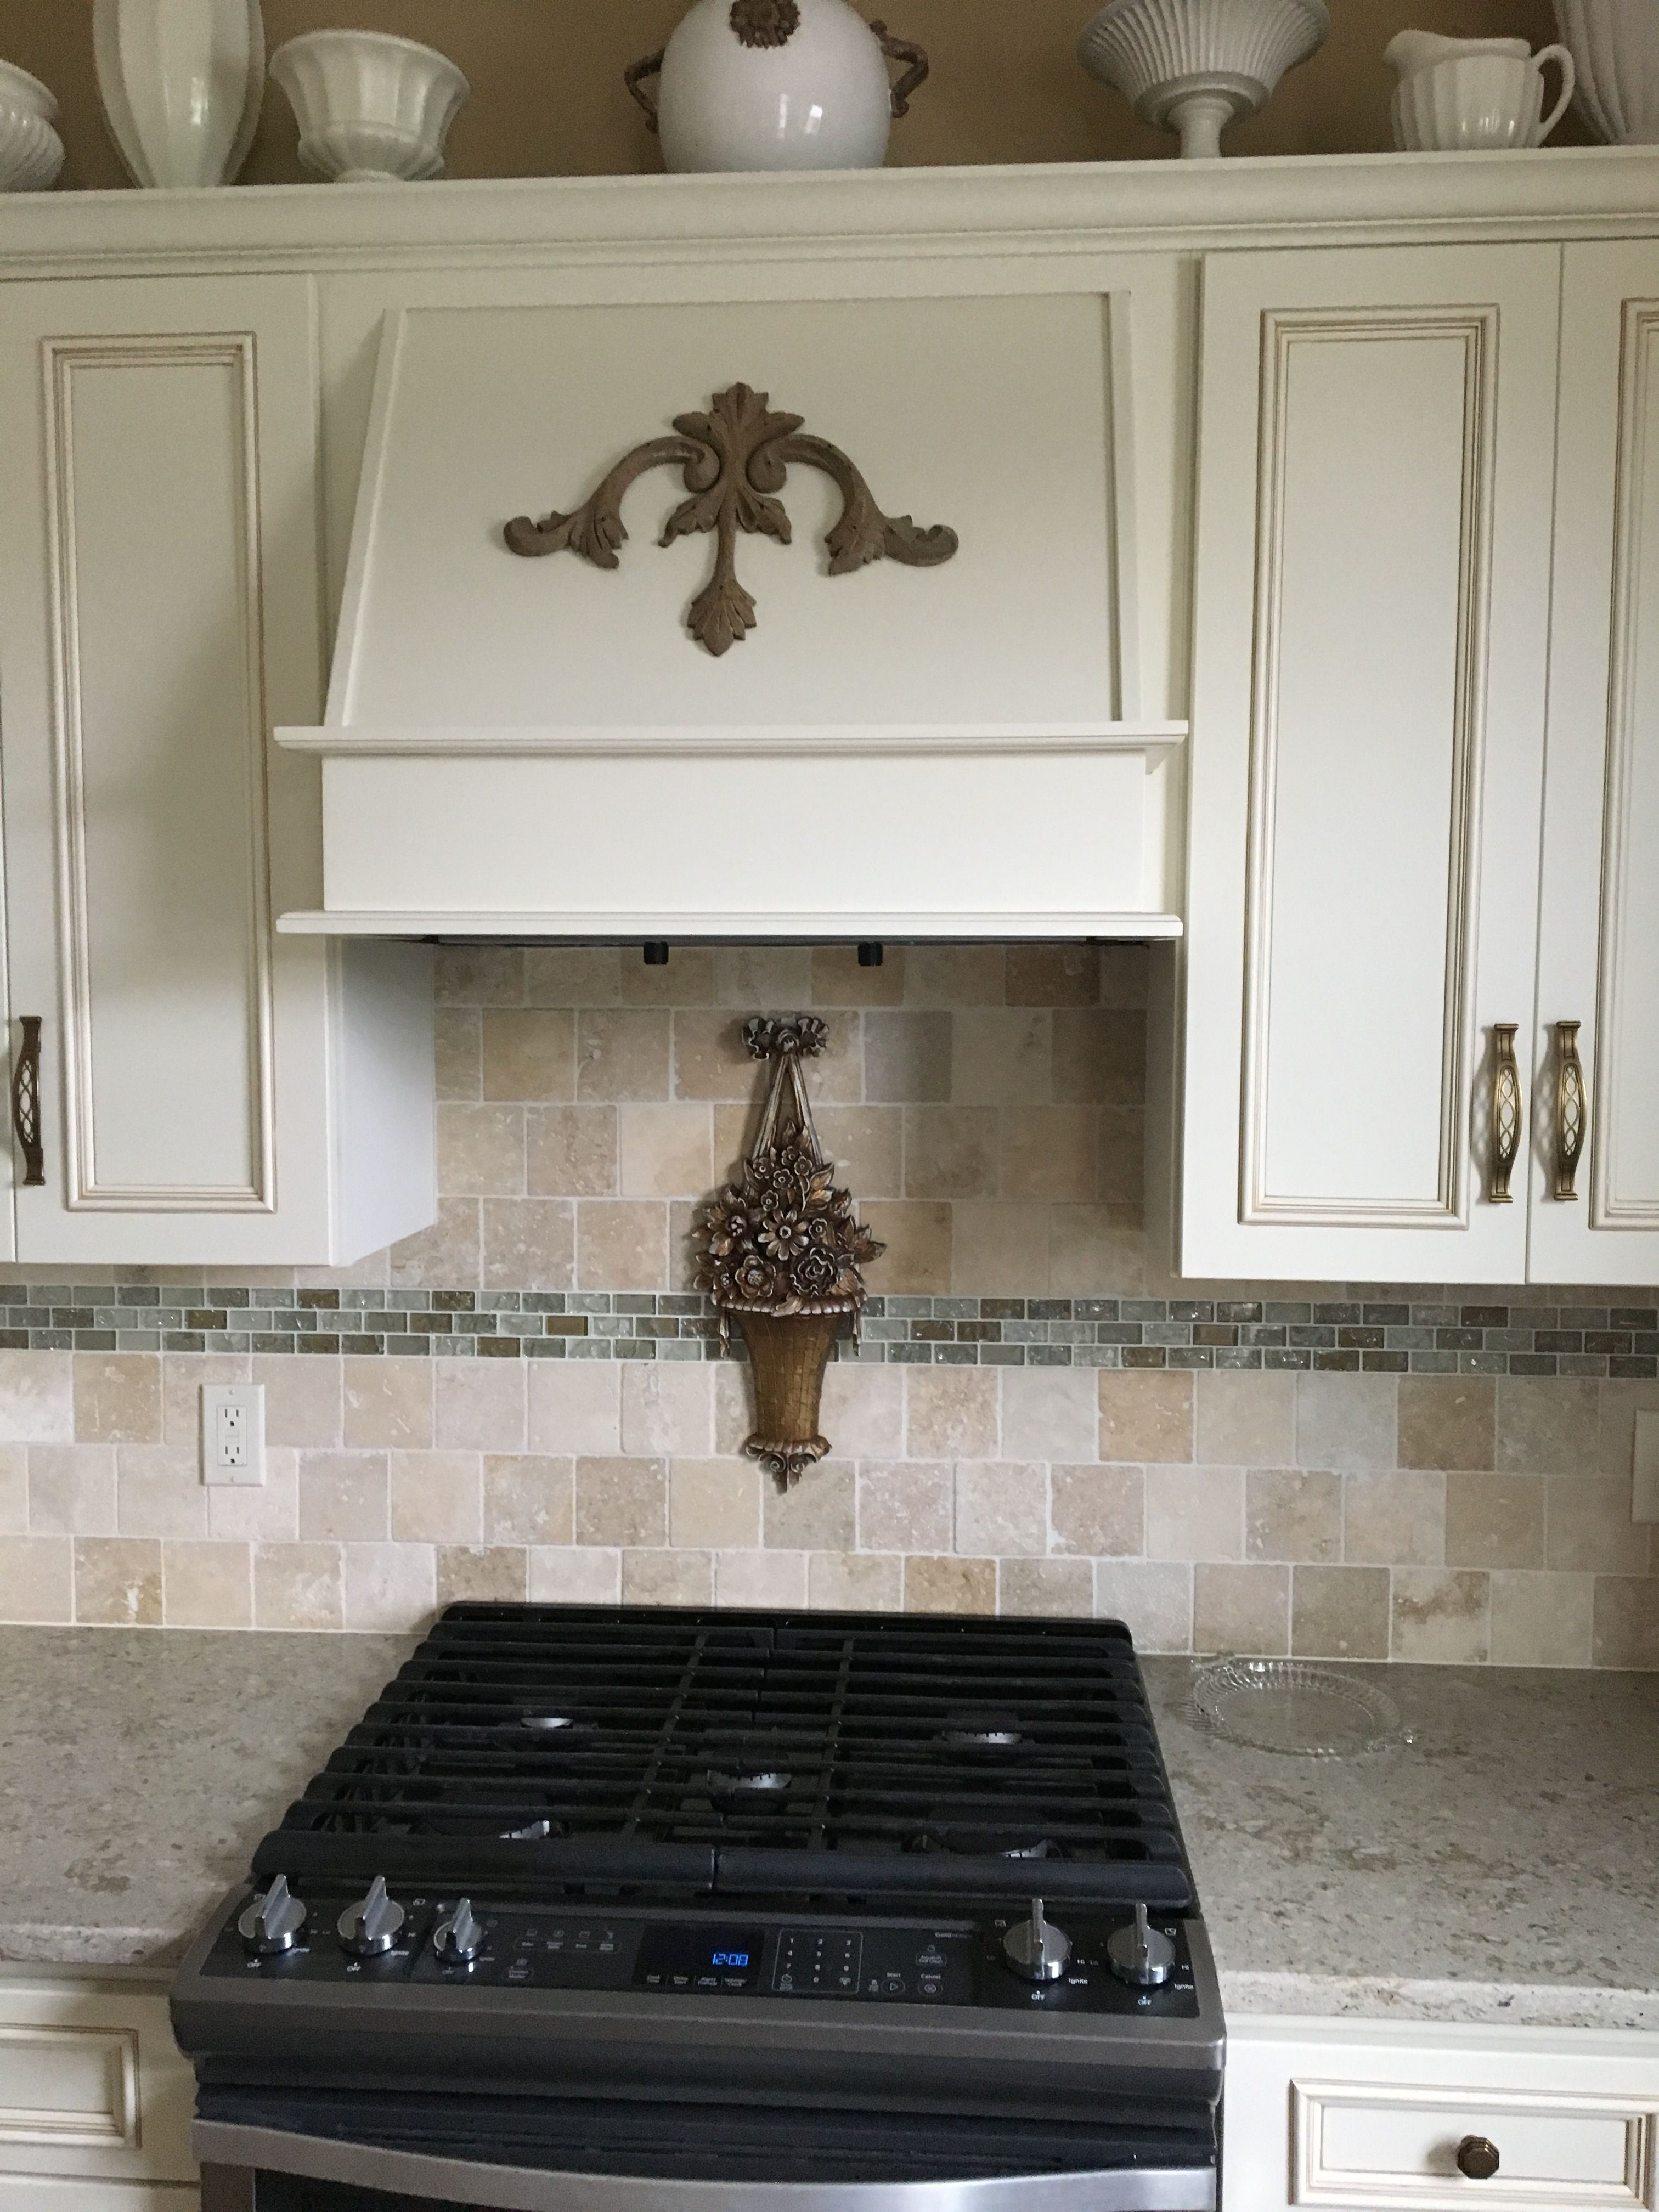 Applique Added To The Stove Hood And To The Tile Backsplash